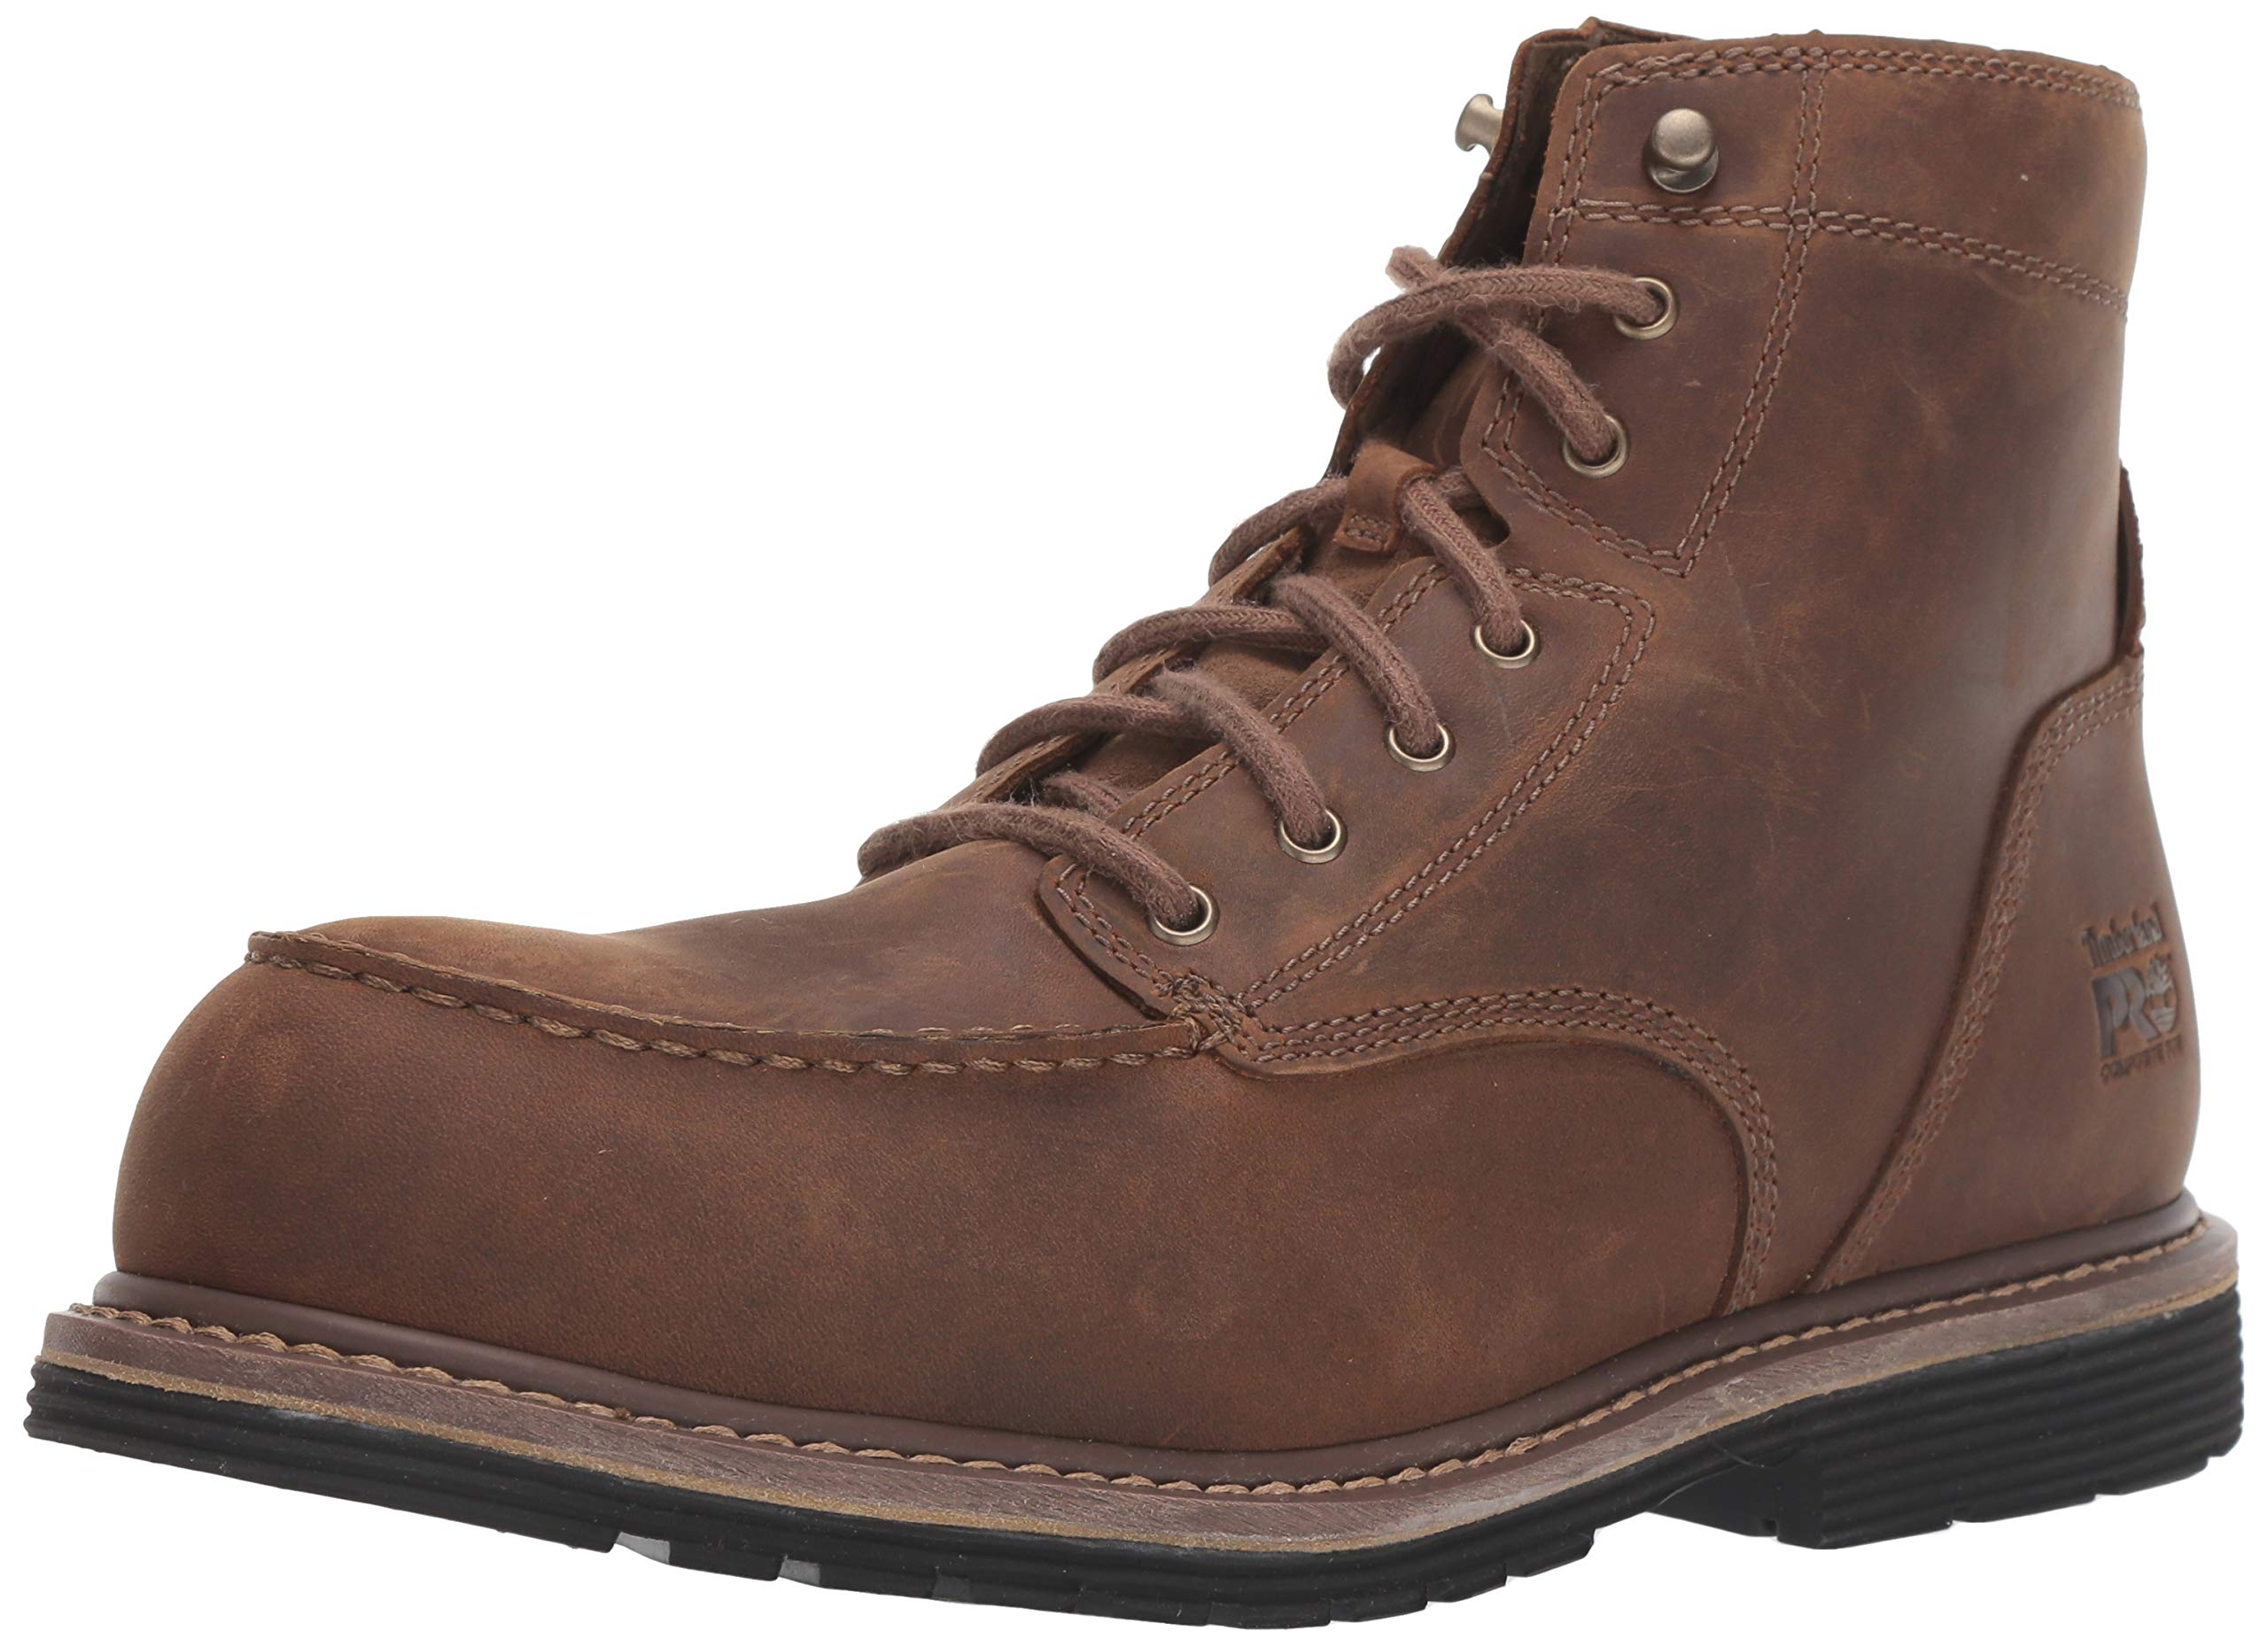 Timberland PRO Men's Millworks 6'' Moc Composite Safety Toe Industrial Boot, Brown Gaucho, 12 W US by Timberland PRO